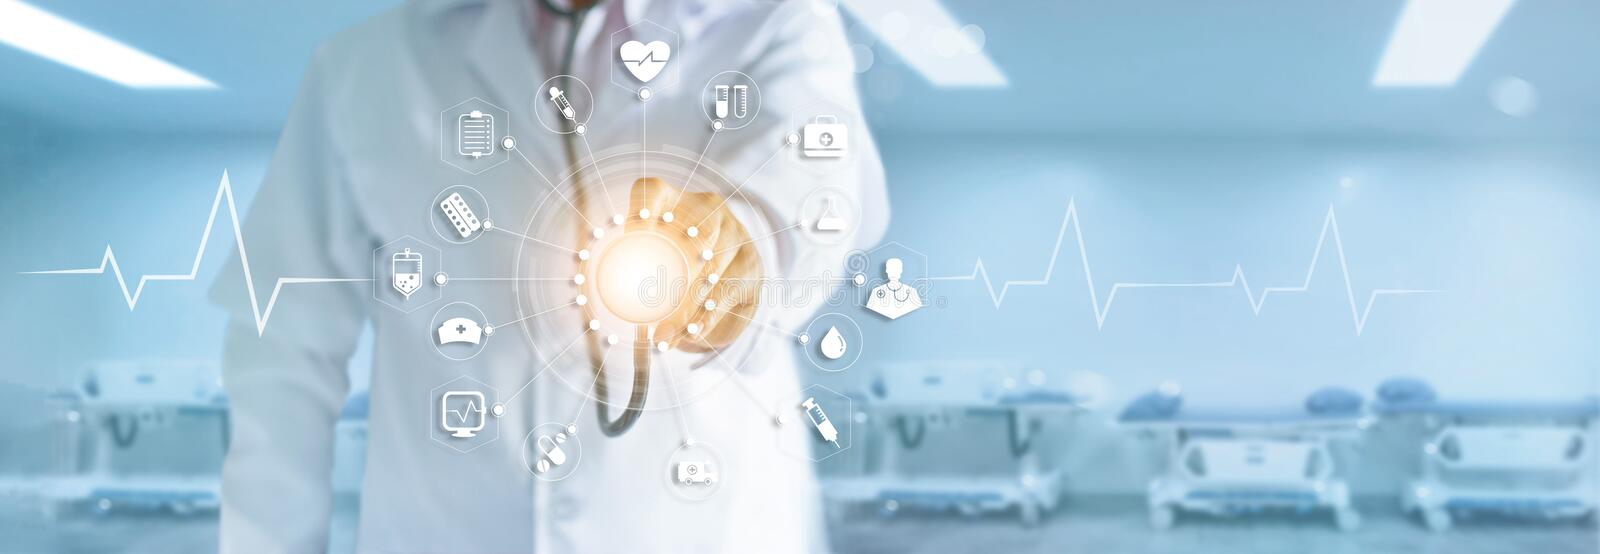 Medicine doctor with stethoscope touching medical icons network. Medicine doctor with stethoscope in hand touching medical network icon connection on modern royalty free stock photography